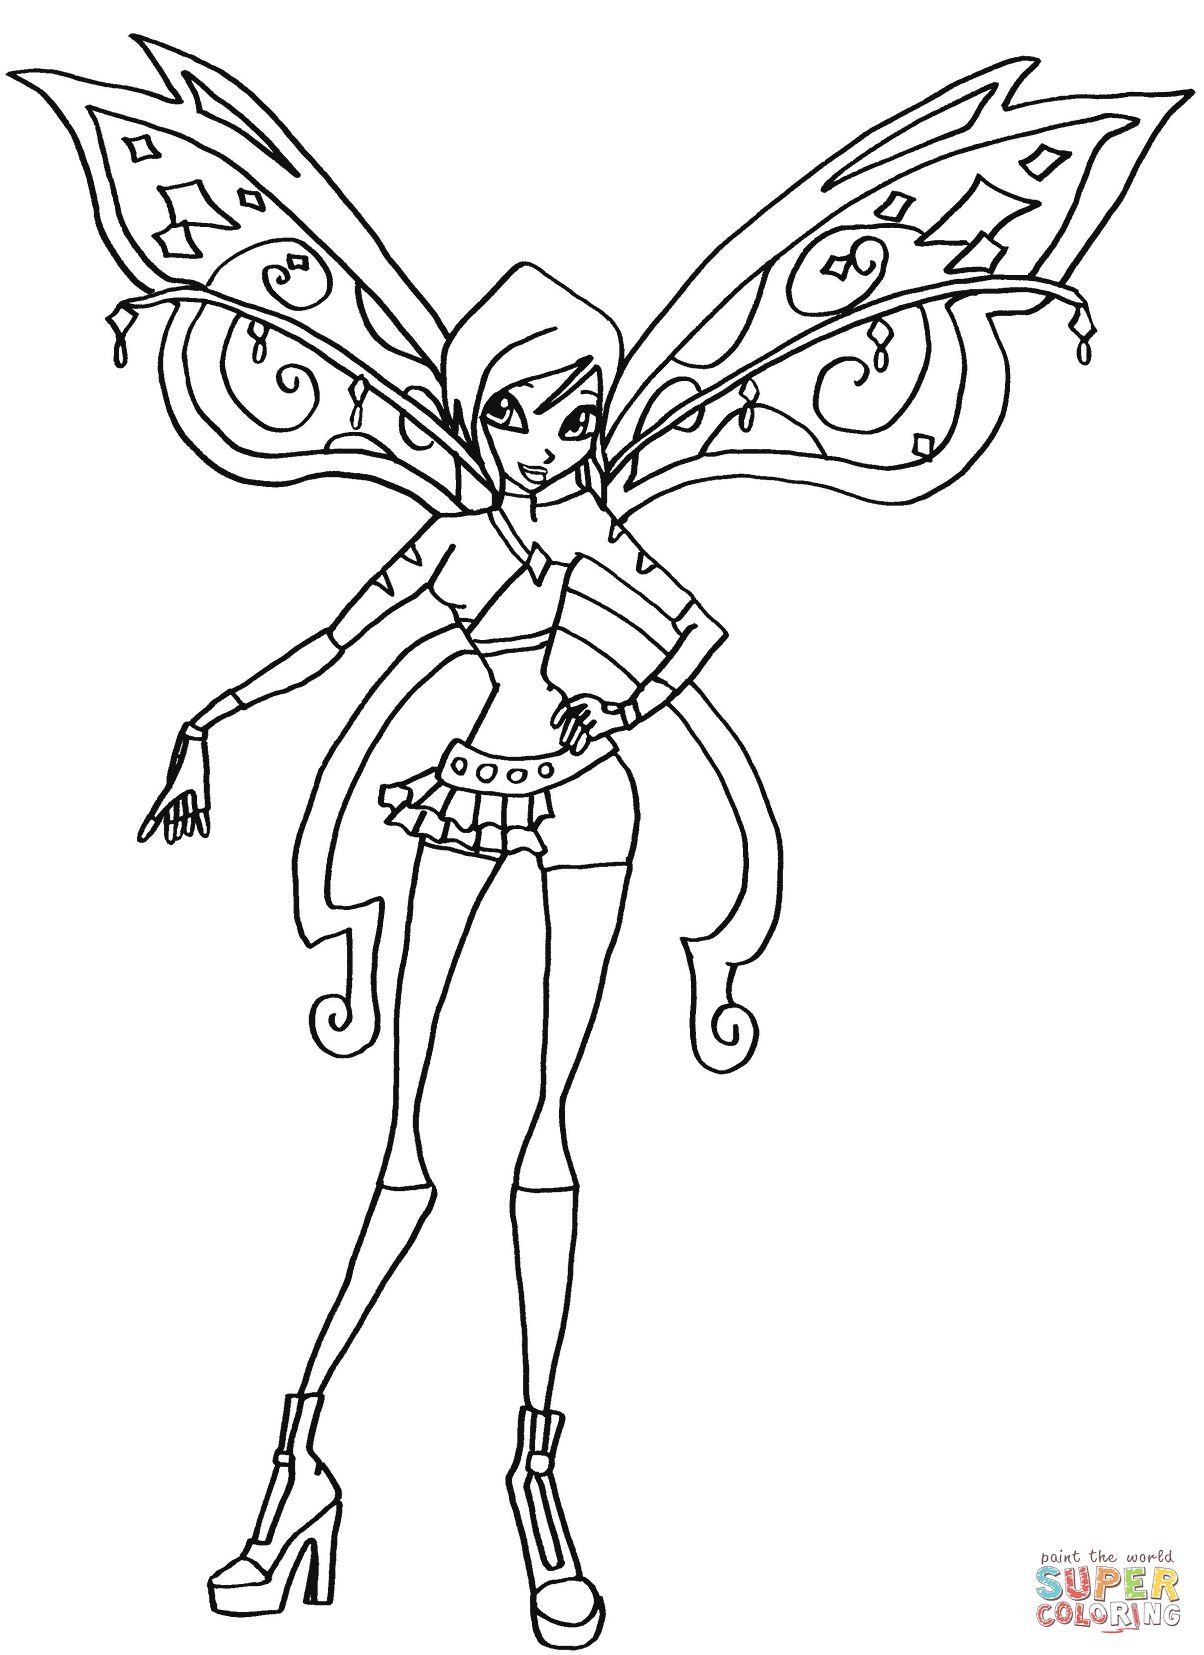 Rainbow Fairy Coloring Pages Fairy Coloring Fairy Coloring Pages Rainbow Fairies